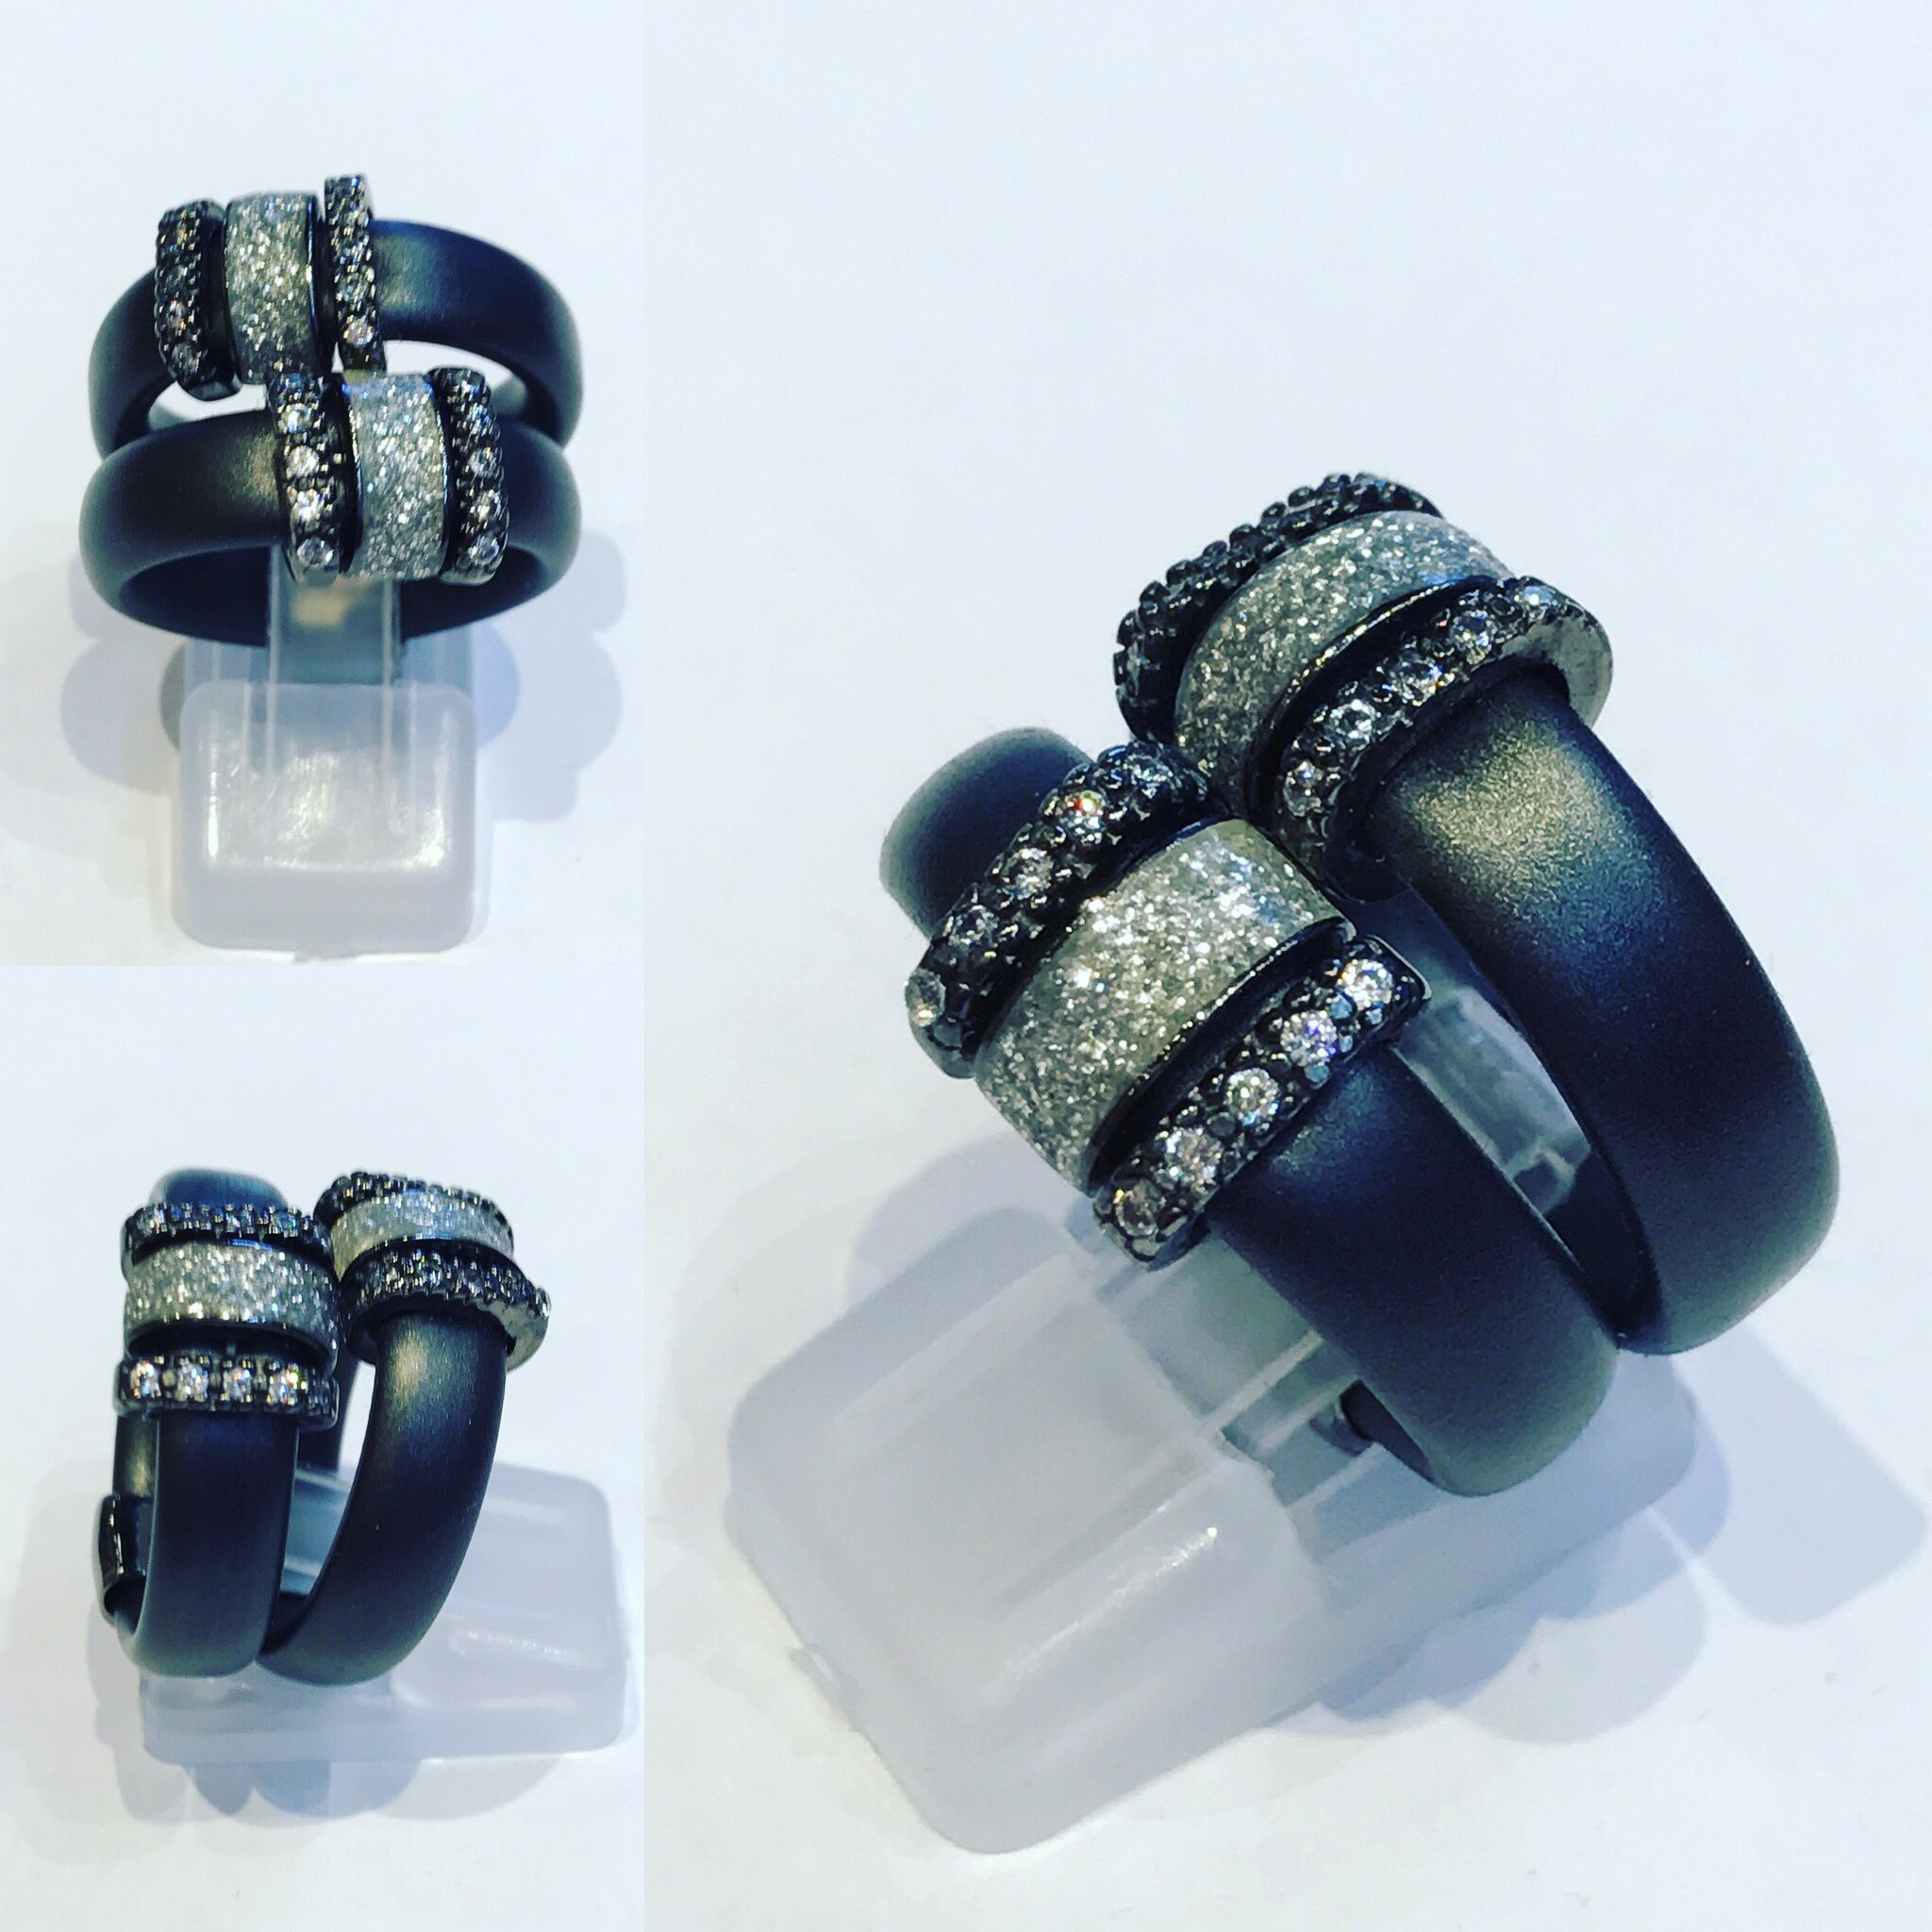 Ring with Silver 925, zircons and Rubber/Silicon. Us size 6.75 Eu 14 Price start at 114$ Available at: Www.bangslove.com